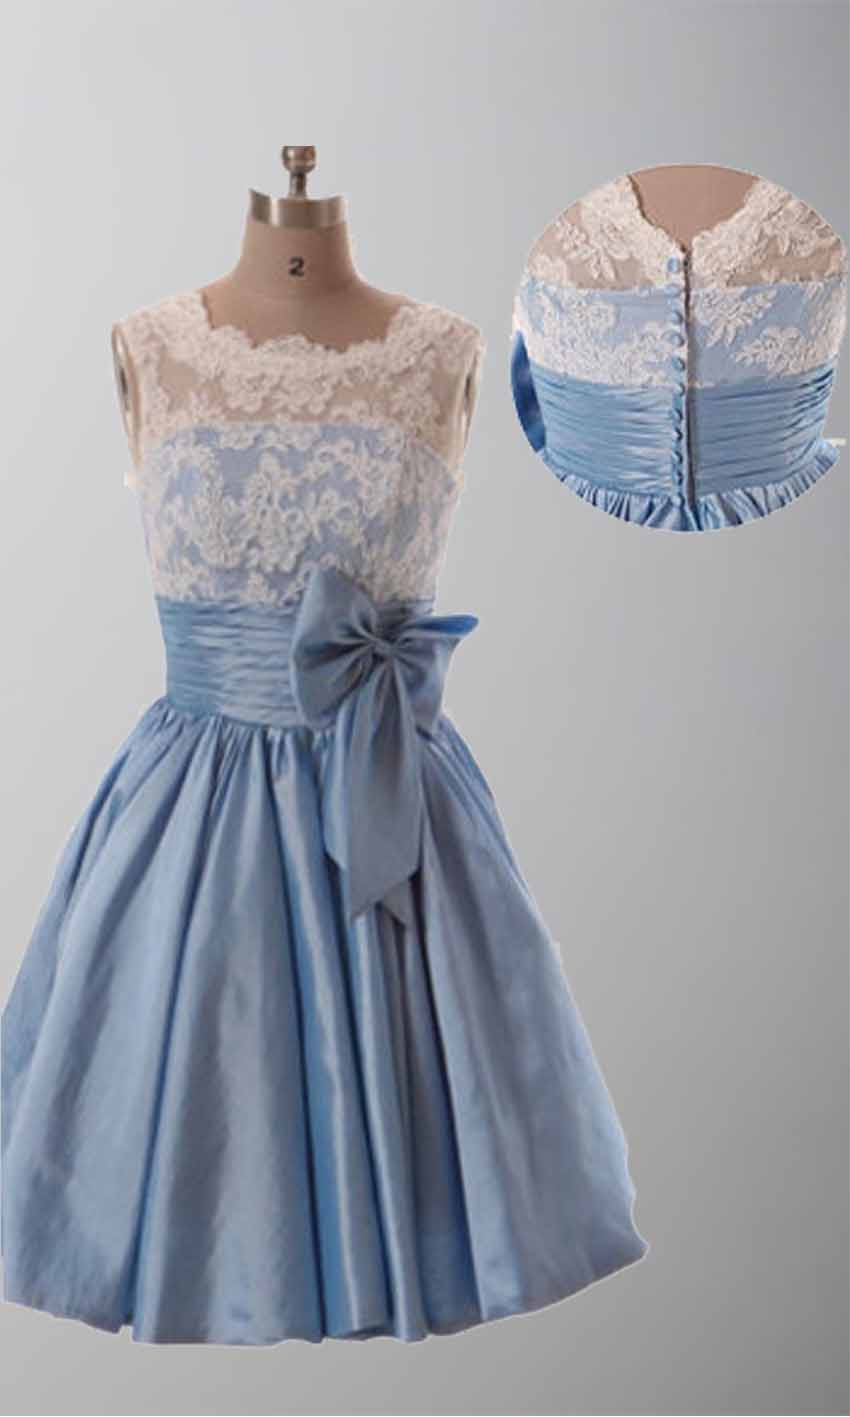 Lace vintage cute bow knot short bridesmaid dresses ksp289 ksp289 lace vintage cute bow knot short bridesmaid dresses ksp289 ksp289 8800 cheap prom dresses uk bridesmaid dresses 2014 prom evening dresses ombrellifo Image collections